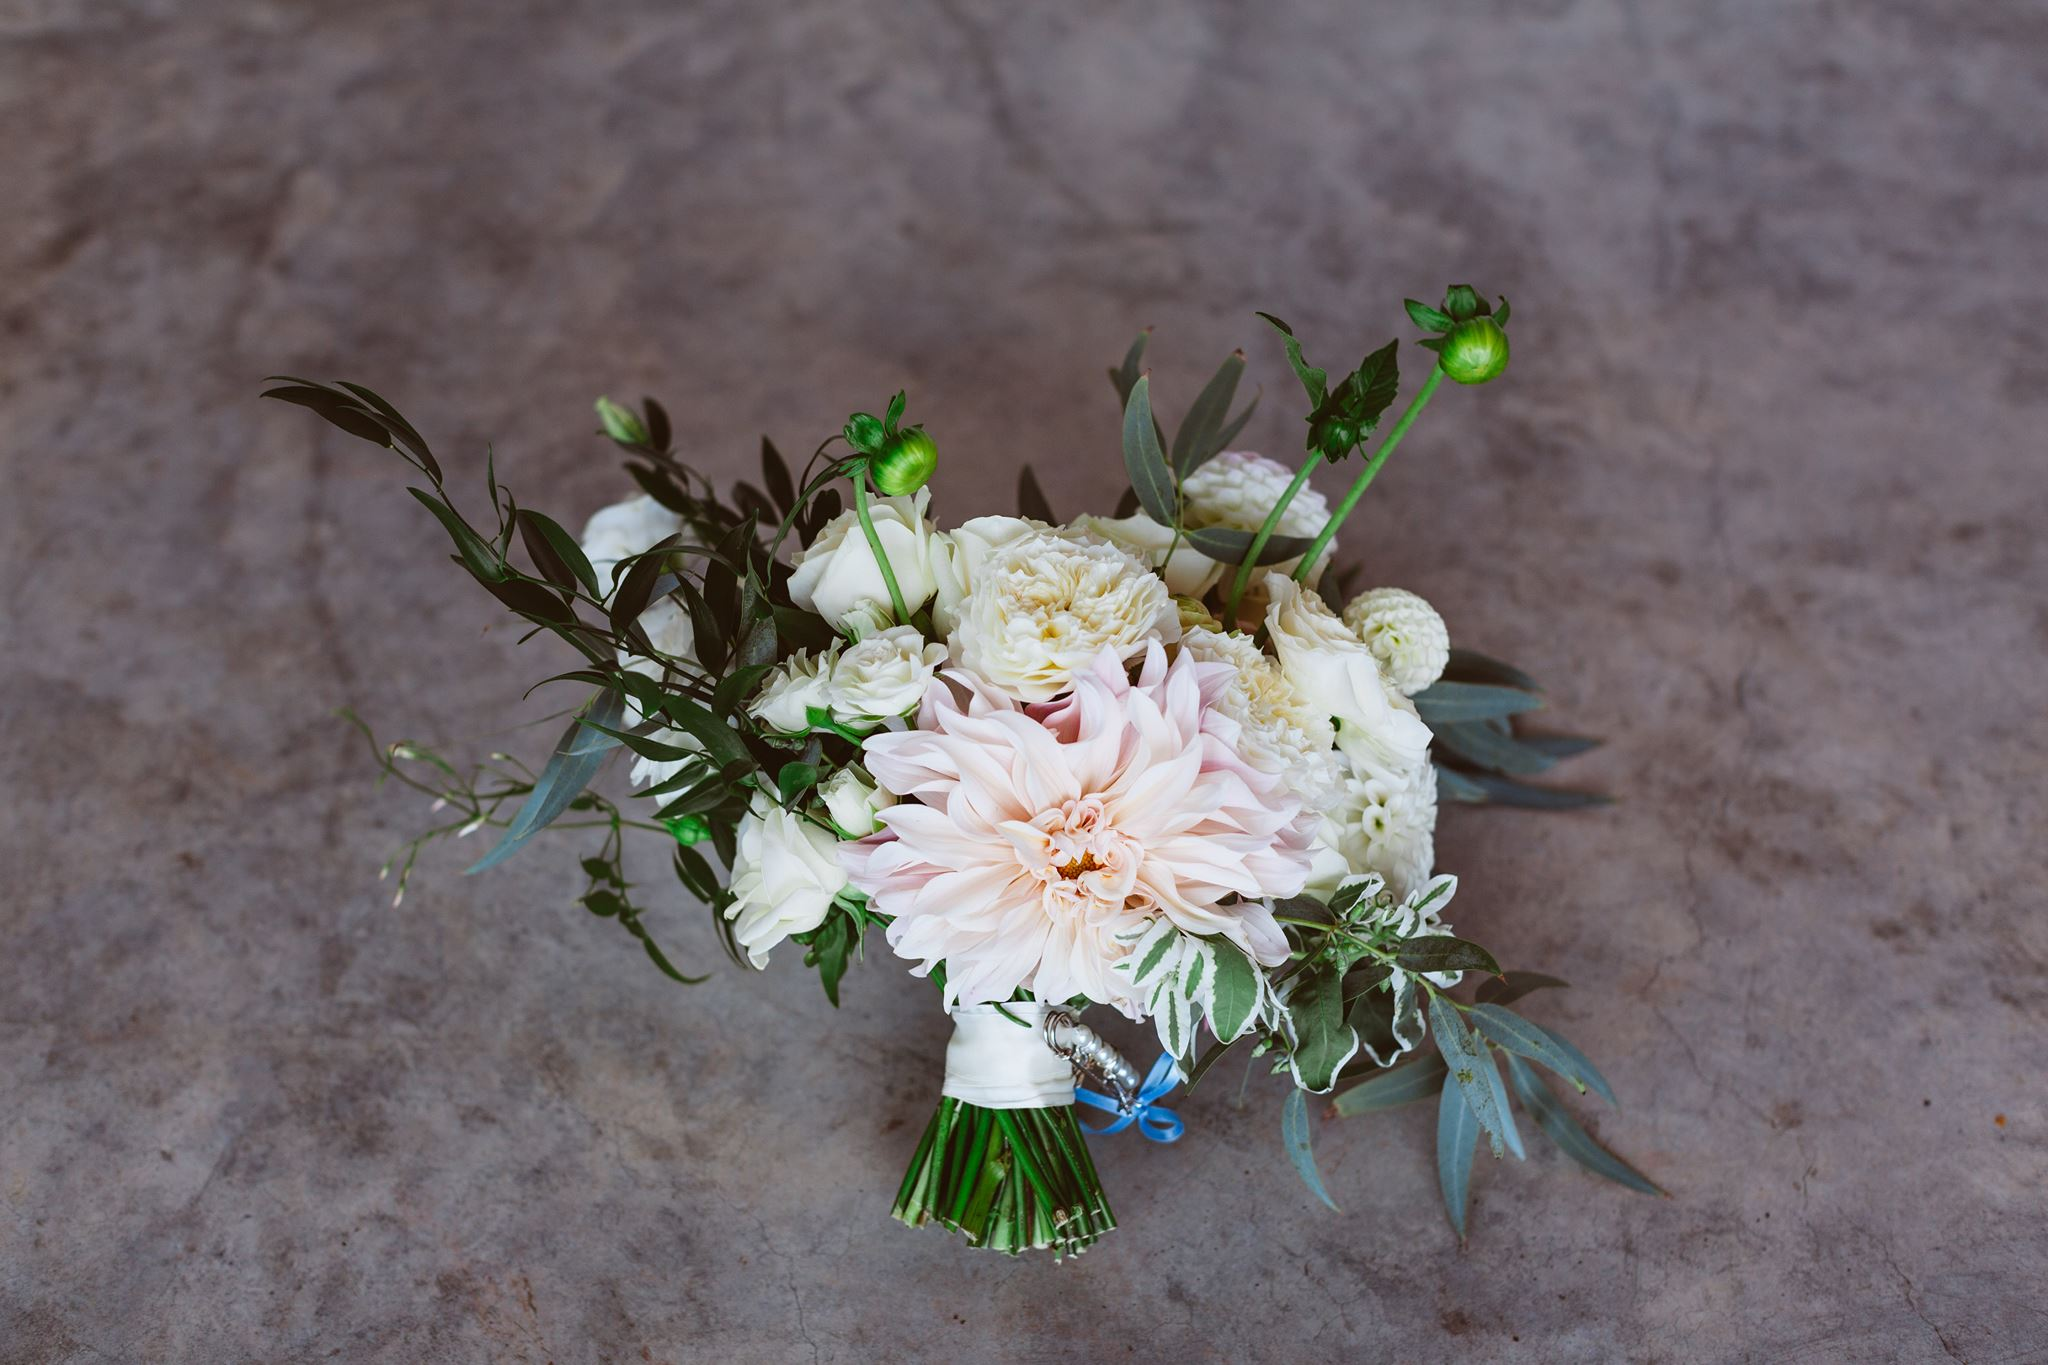 Swift and Click Wedding Photo Dahlia Bouquet Garden Bouquet Rose White Romantic Wedding Bridal Eucalyptus Ruscus